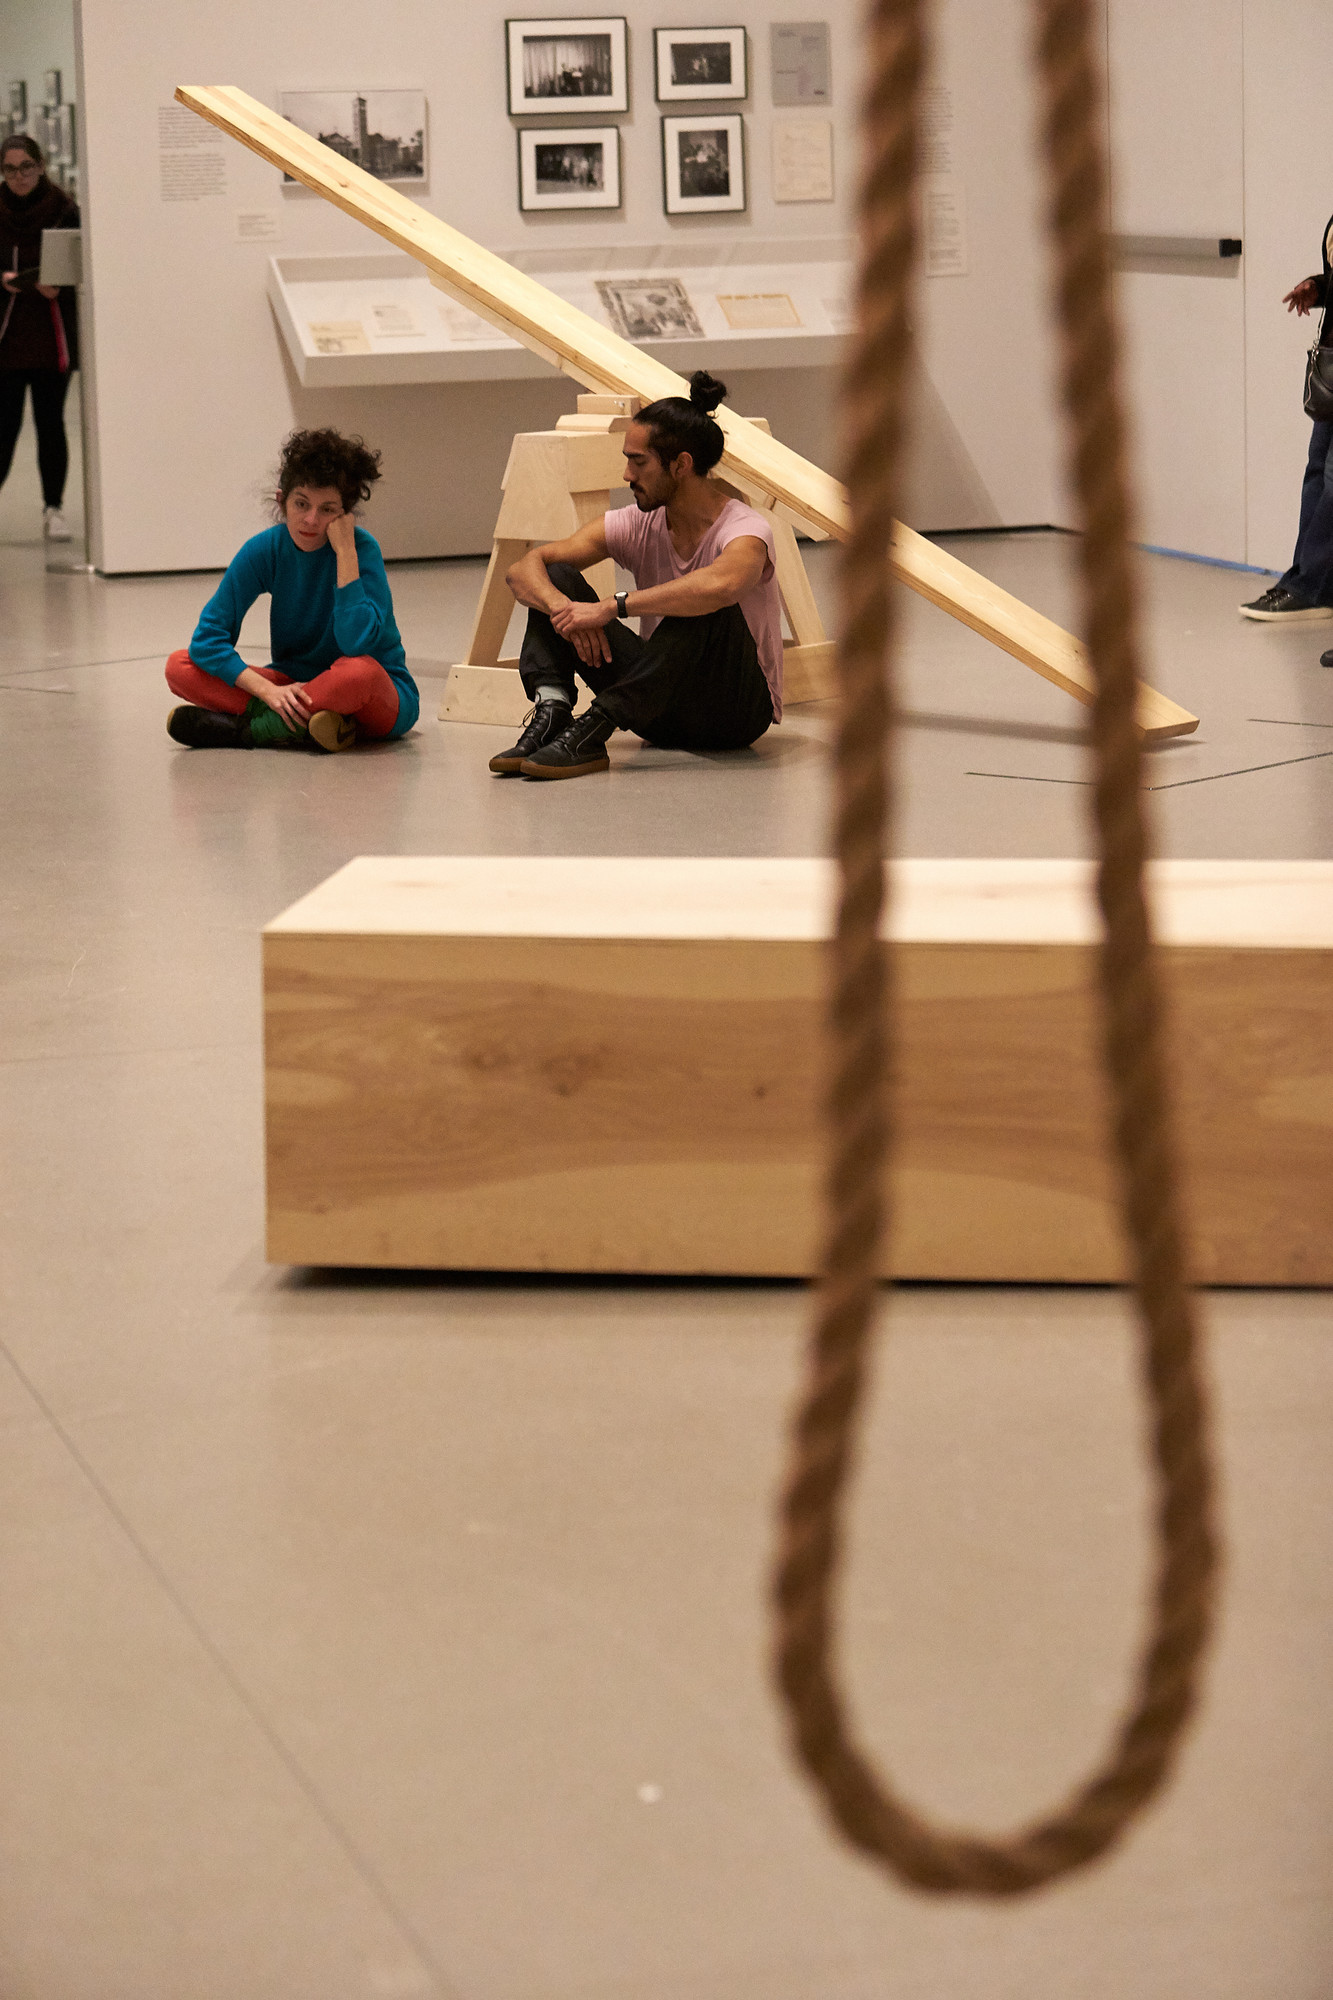 Sound escapes through the small crack at one side of the plywood box. Lee Relvas and Miguel Ángel Guzmán sit on the floor, listening quietly for the duration of the piece.